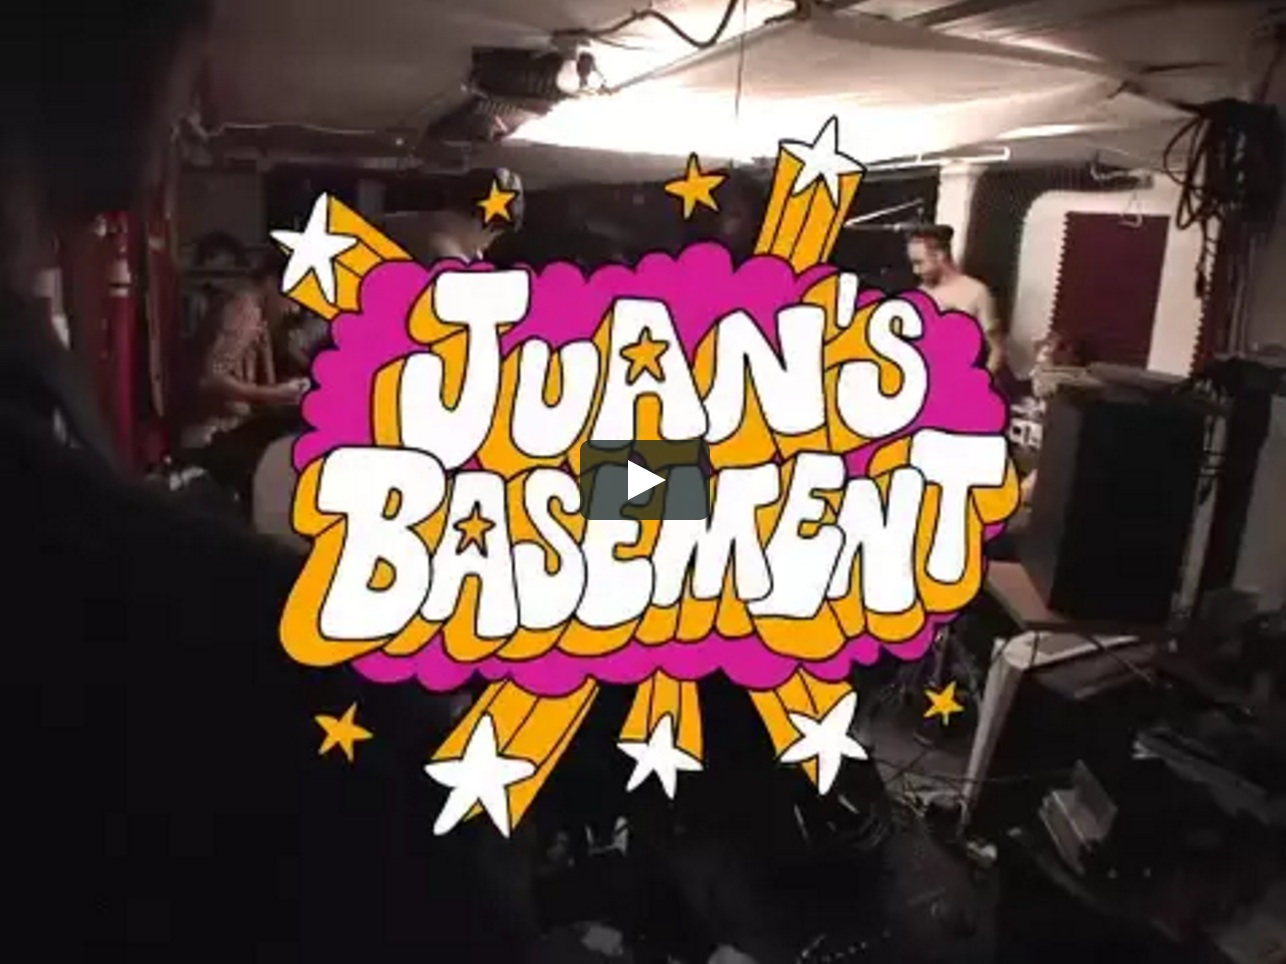 The Walkmen on Juan's Basement